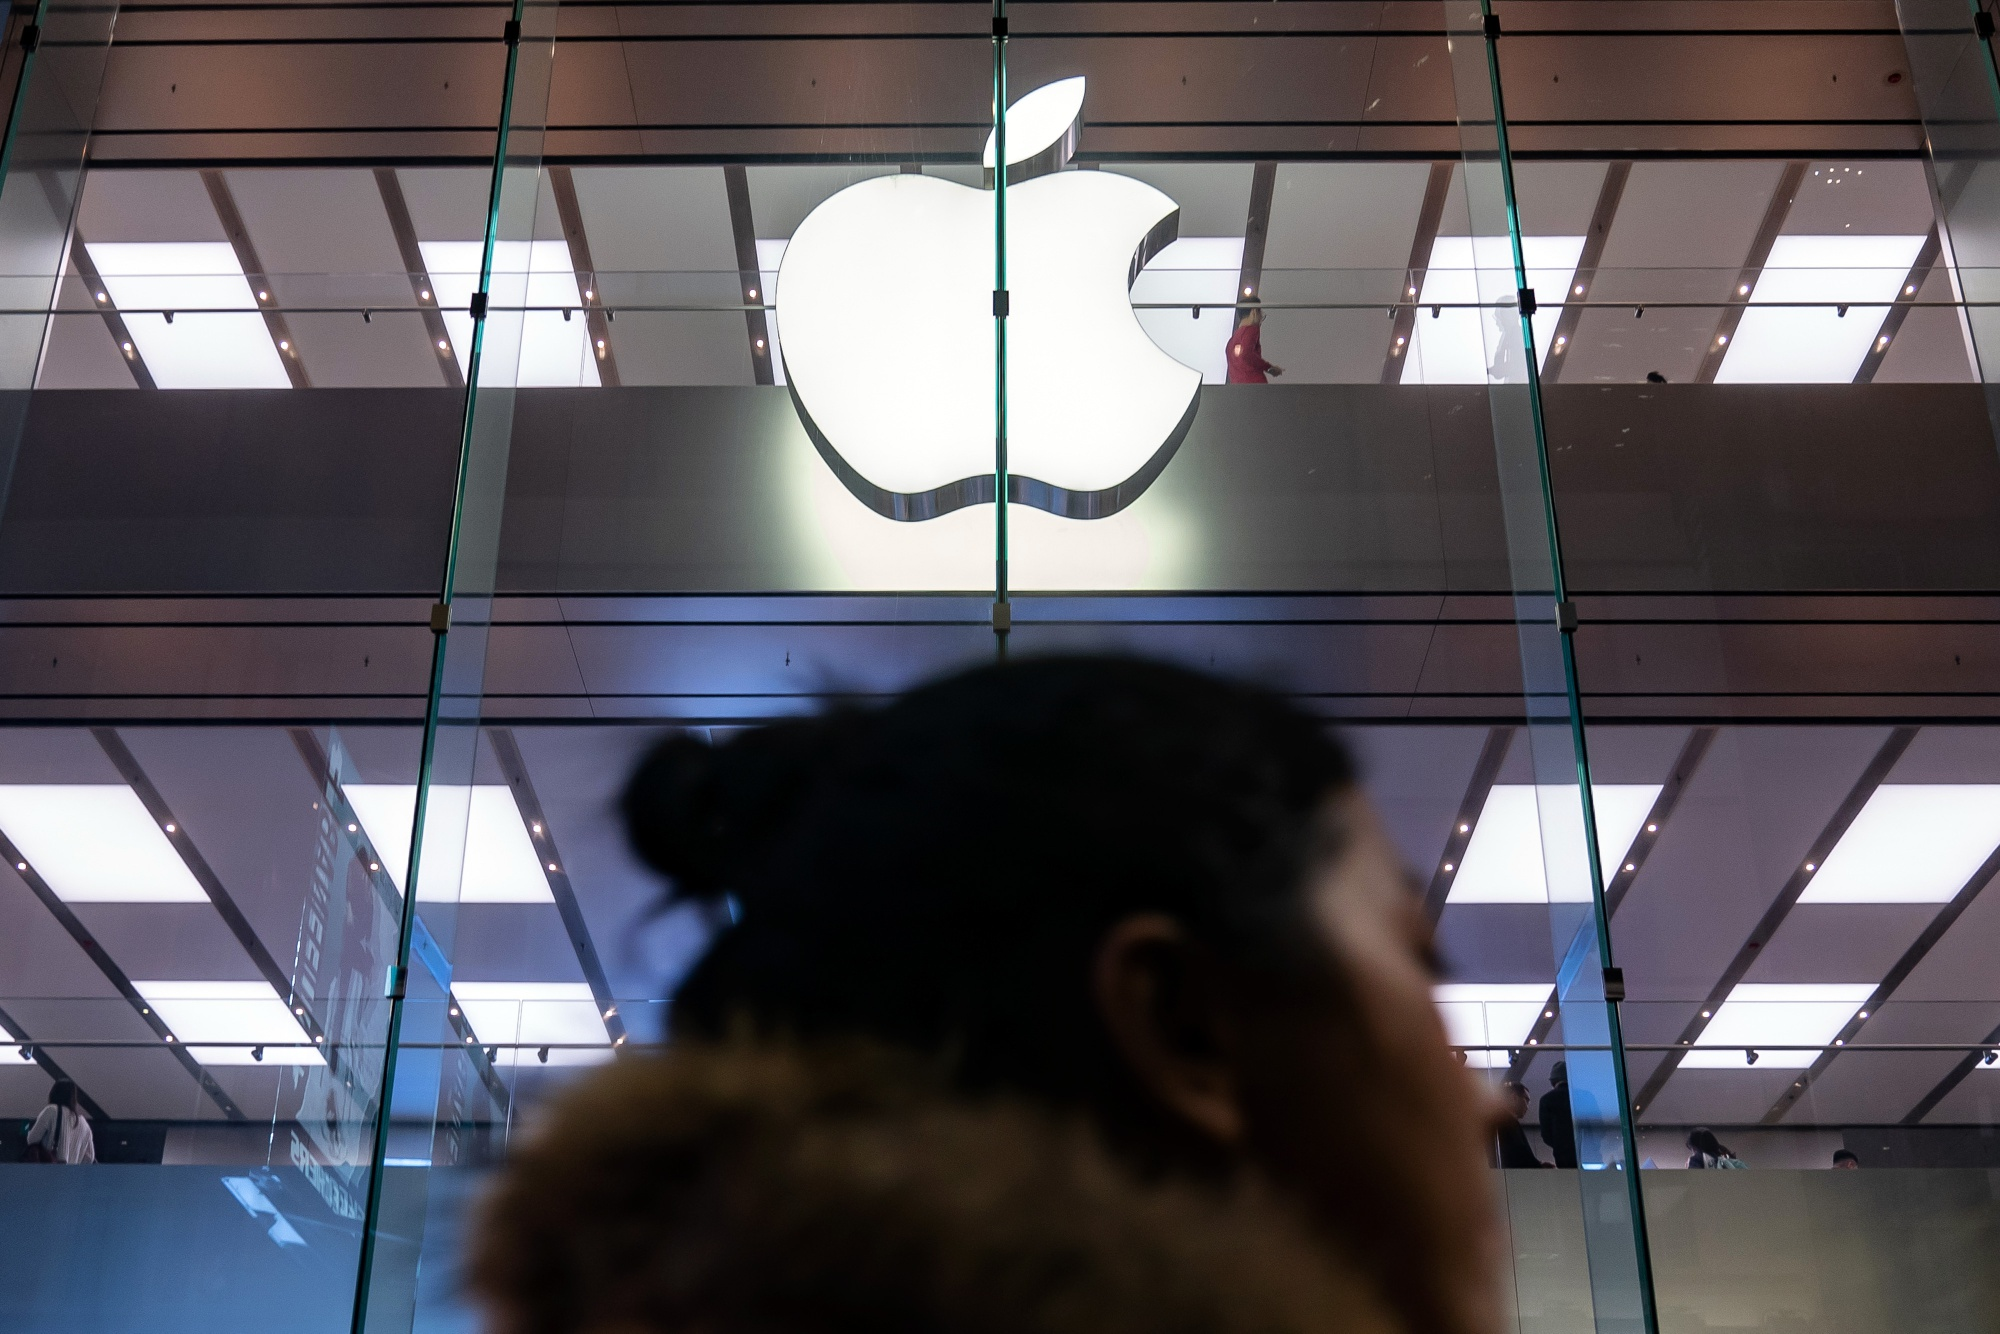 bloomberg.com - Mark Gurman - Apple Plans Some Hiring Reductions After Selling Fewer iPhones